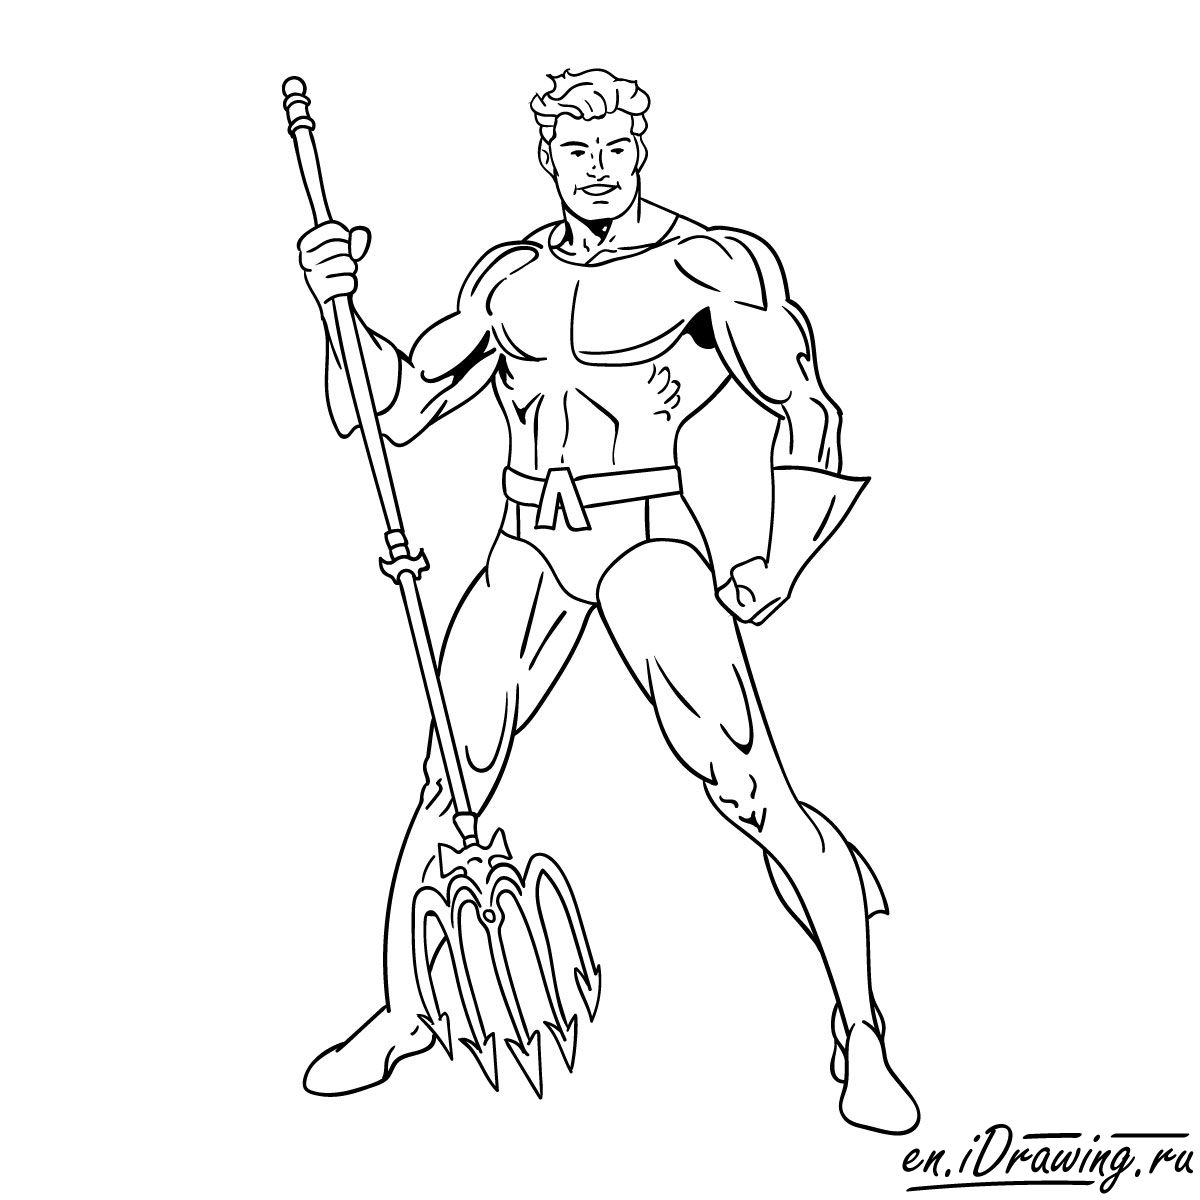 How to draw Aquaman from cartoons and comic books - step 18